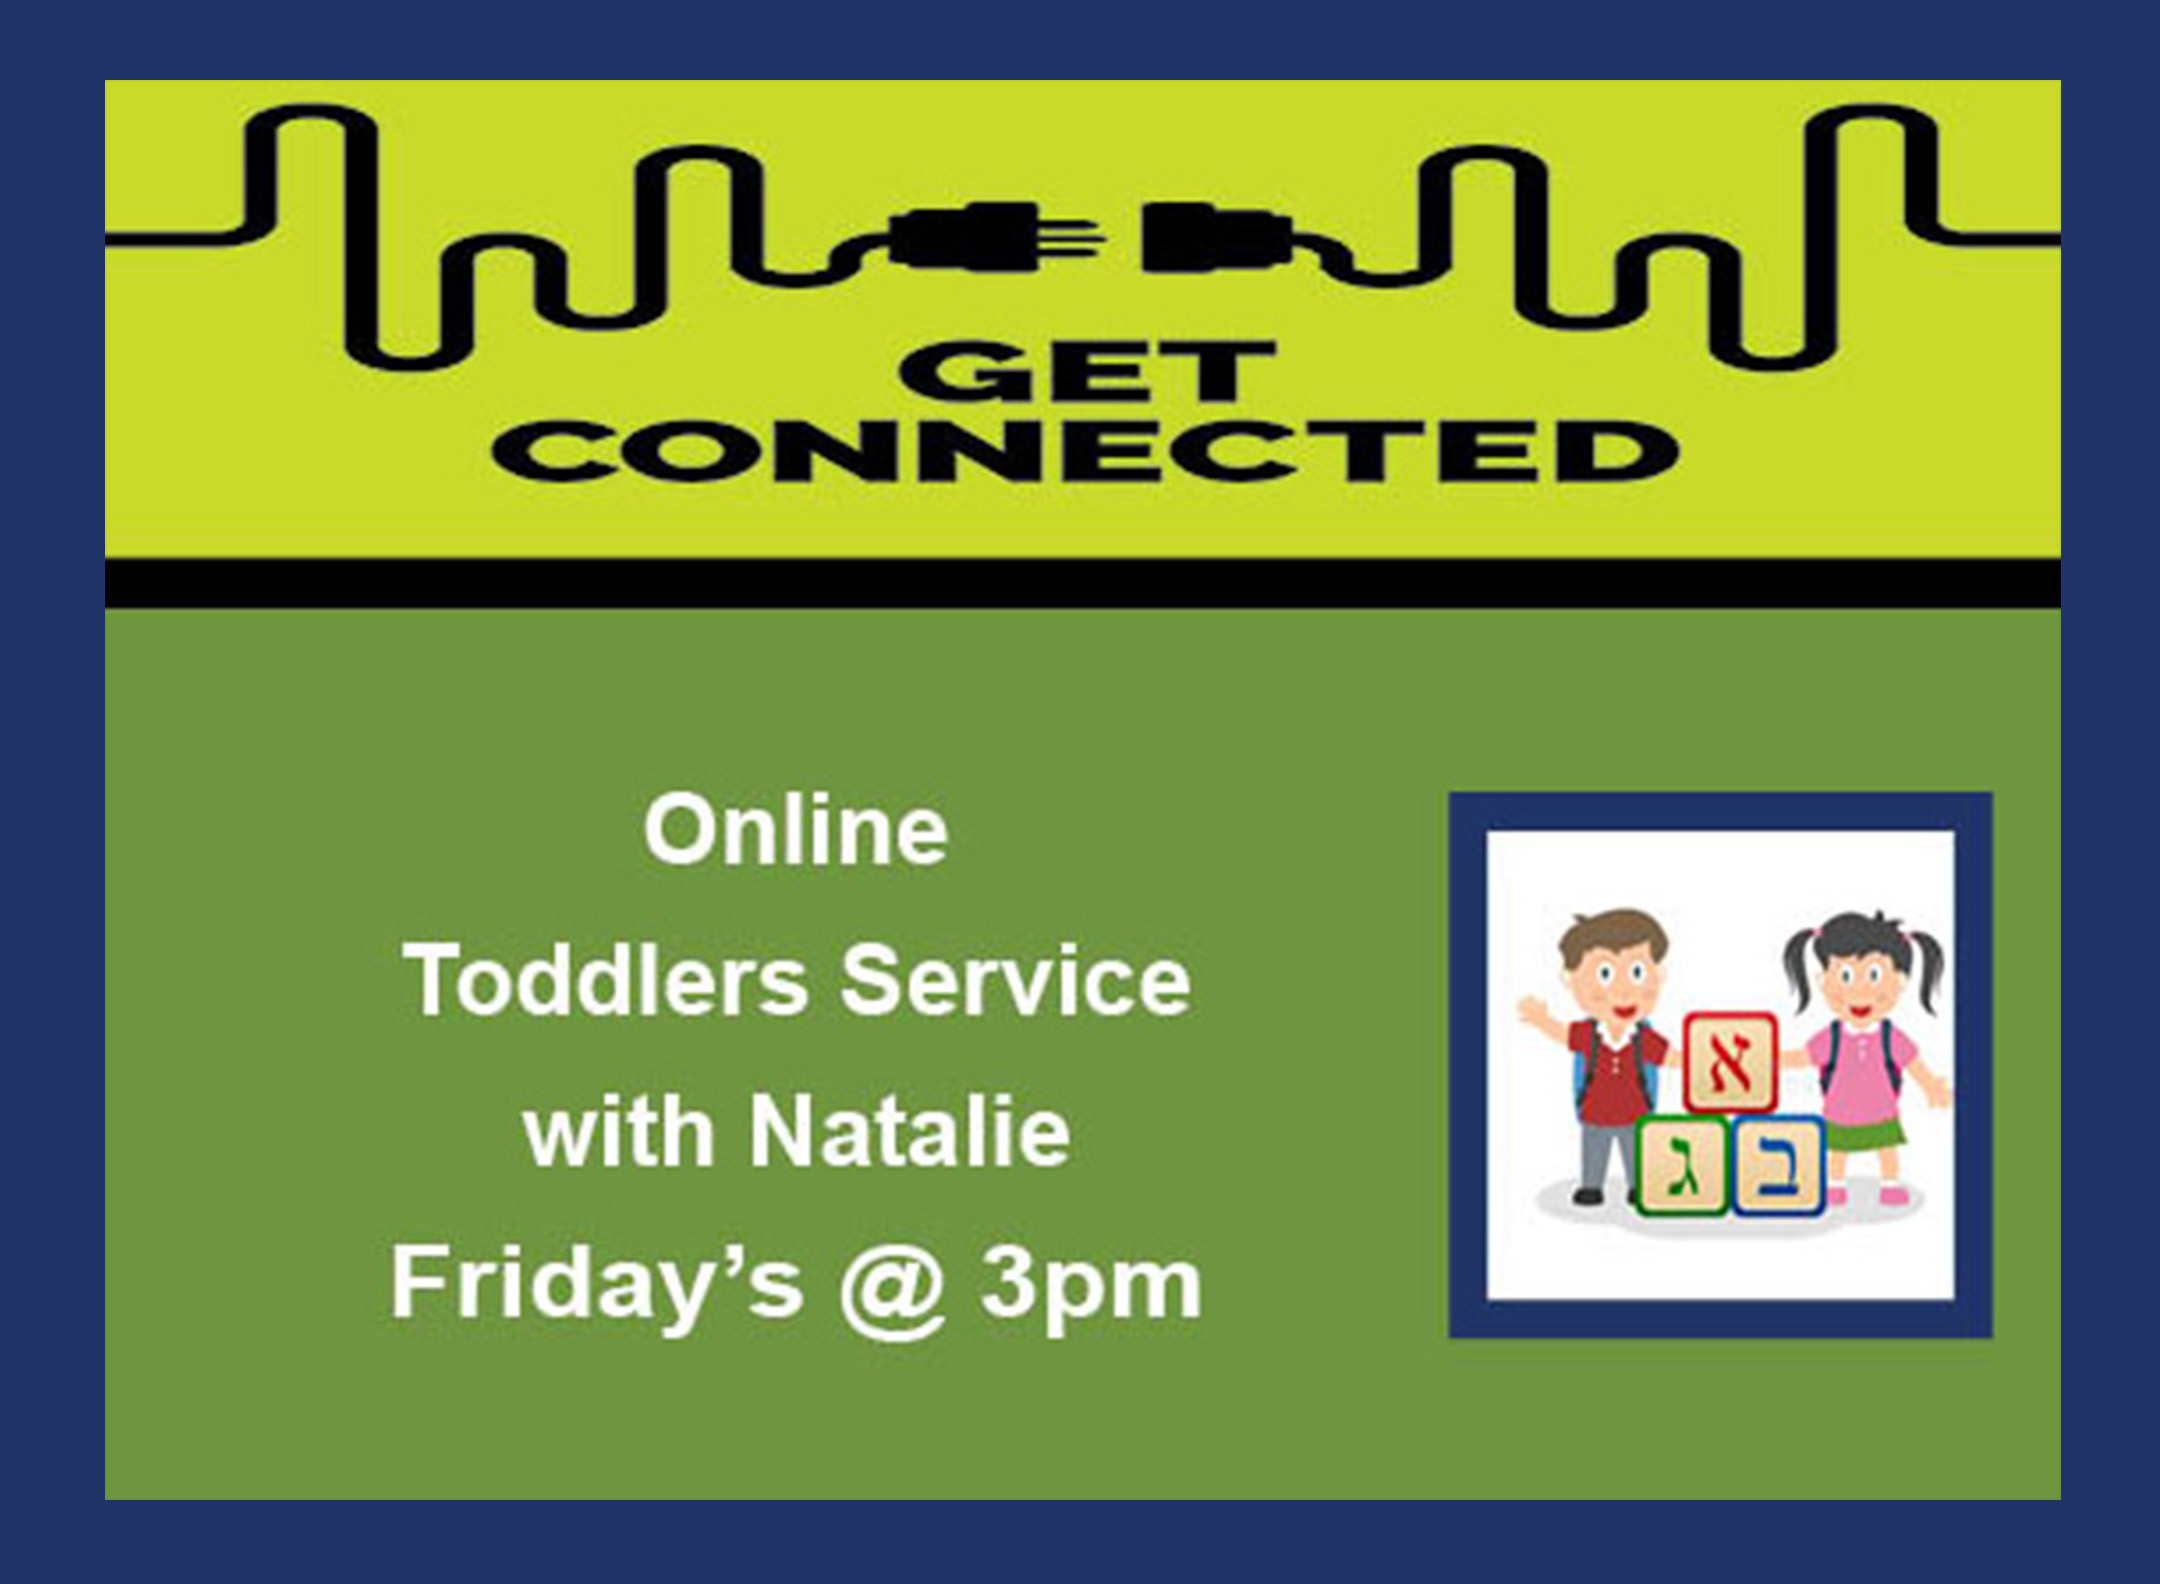 08 Toddlers Service Fridays 3pm